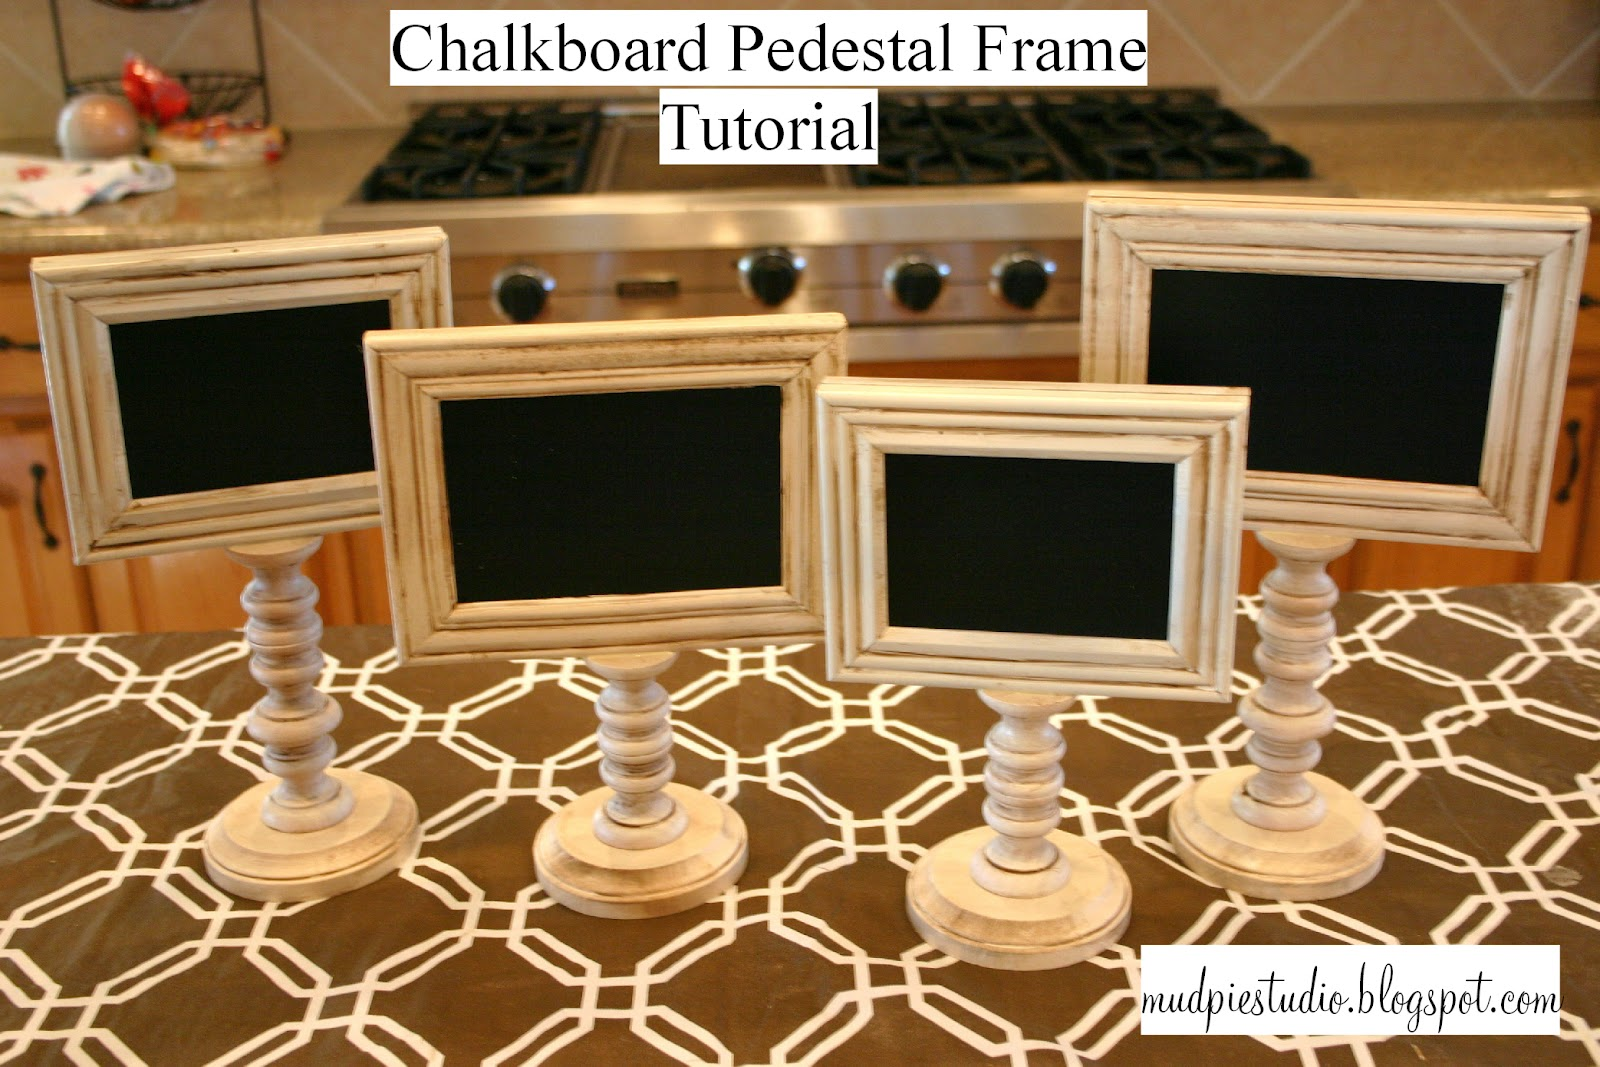 michellelisatreasure mariacantelmi christmas images pedestal frames ornate by picture pinterest frame ideas best and on